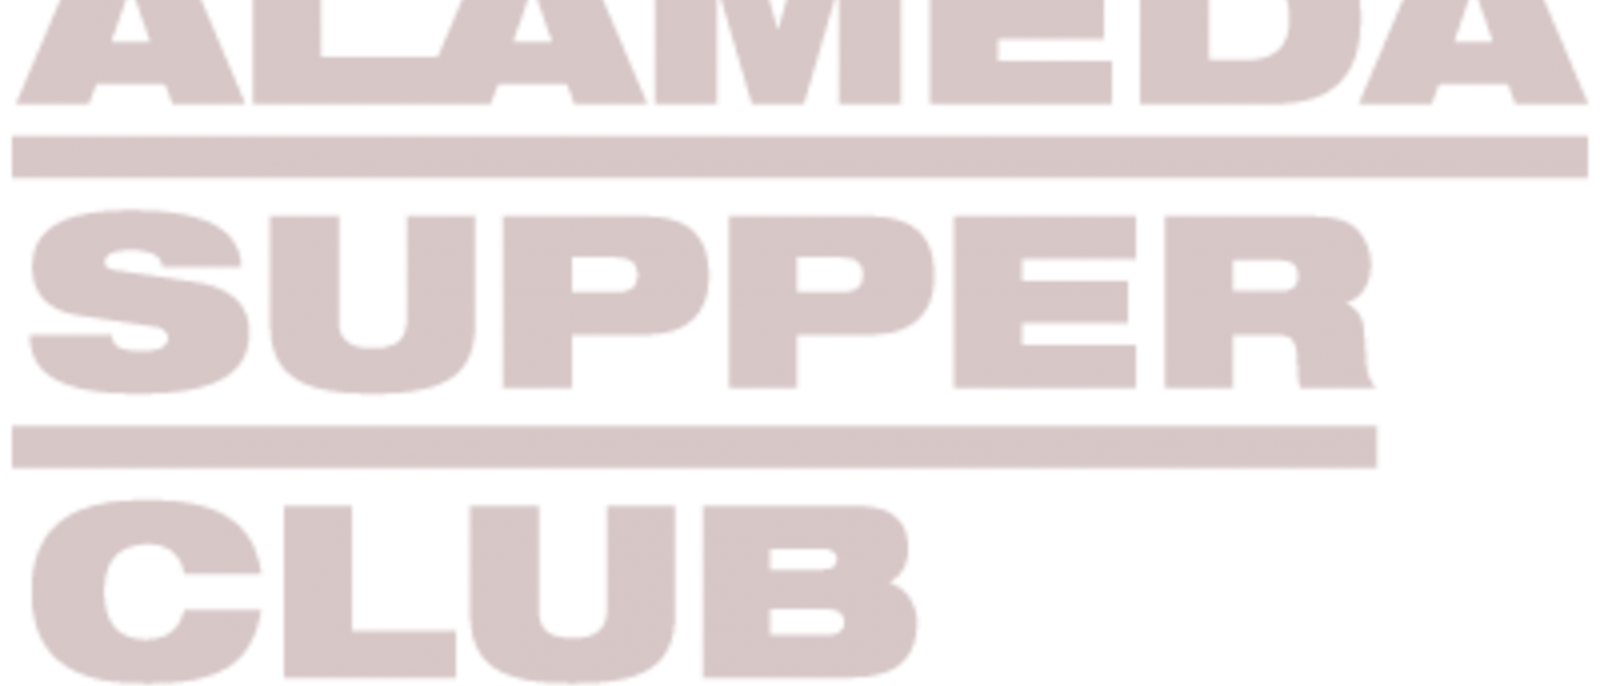 Alameda Supper Club